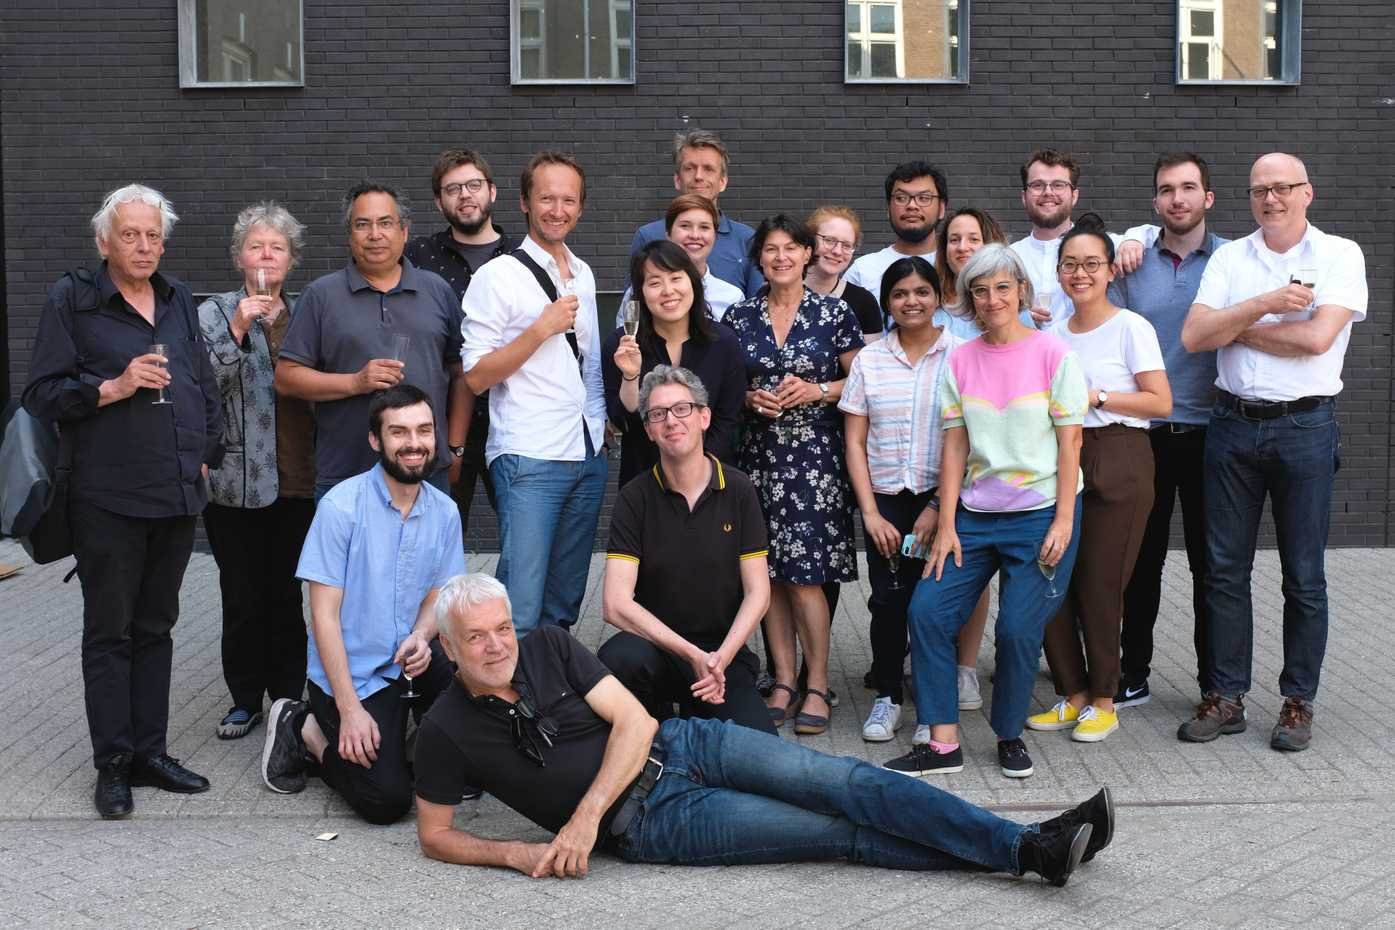 The graduating class of TypeMedia 2018 along with many of the TypeMedia teachers